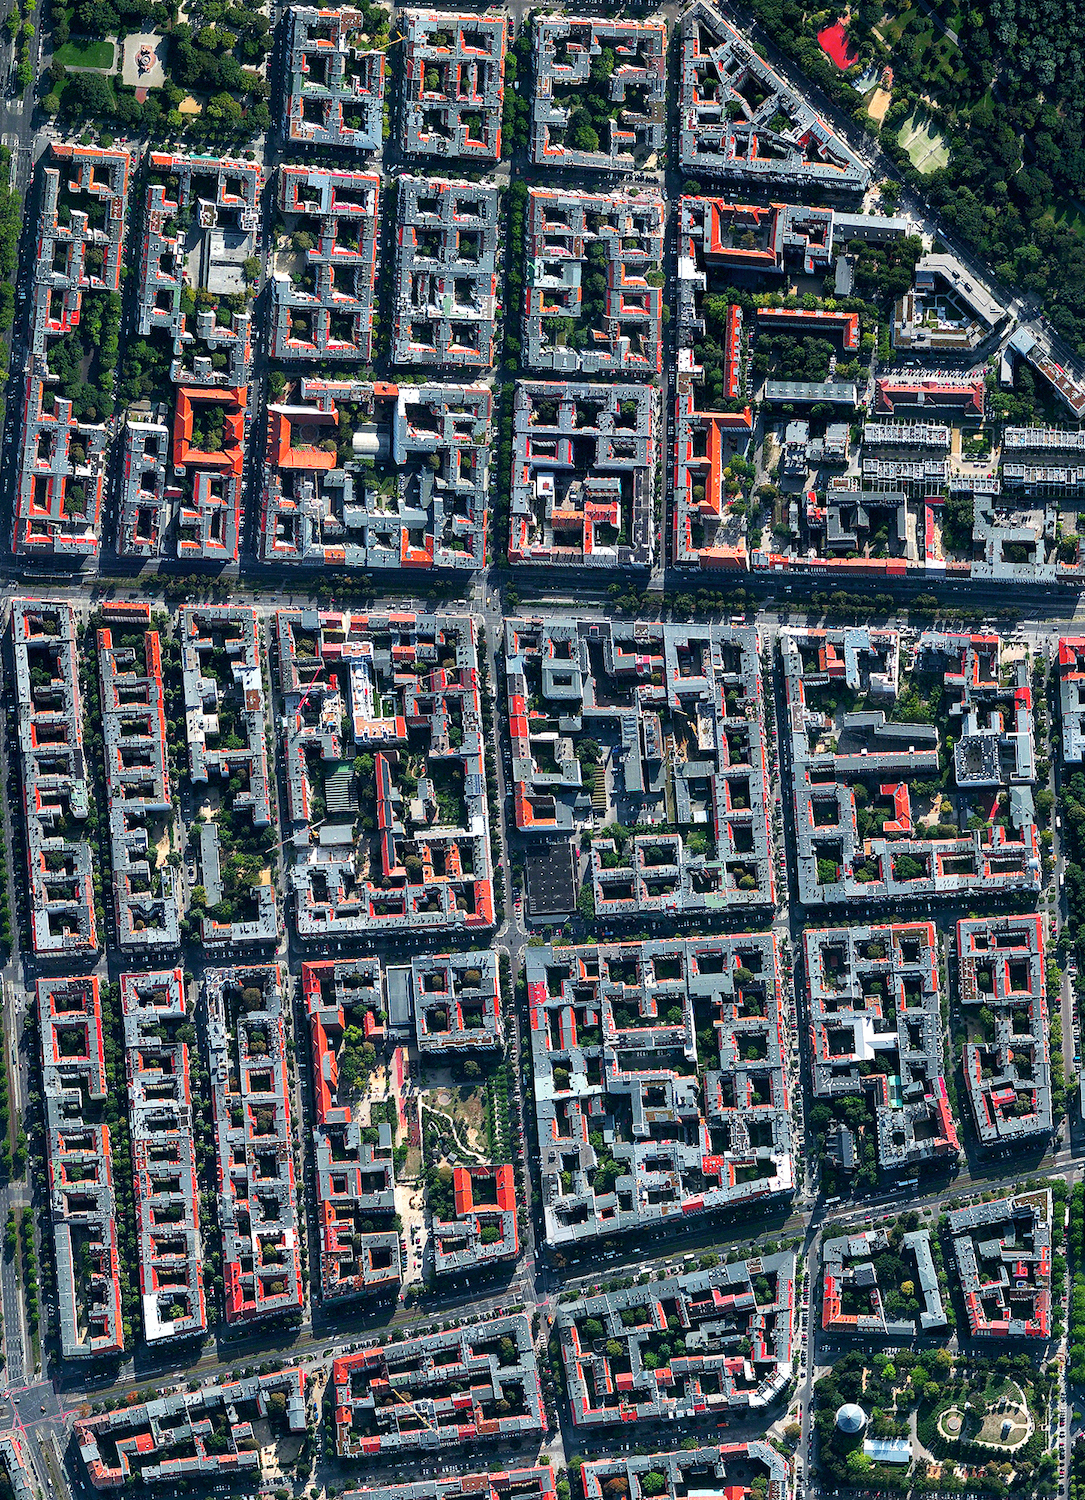 For the next month I'm excited to announce that I'll be living and working from Berlin, Germany! The magnificent architecture of the Winsviertel and Bötzowviertel quarters, both located within Prenzlauer Berg, are captured in this Overview. If you're in Berlin, say hello and perhaps we will cross paths this month!  52.532157, 13.423783